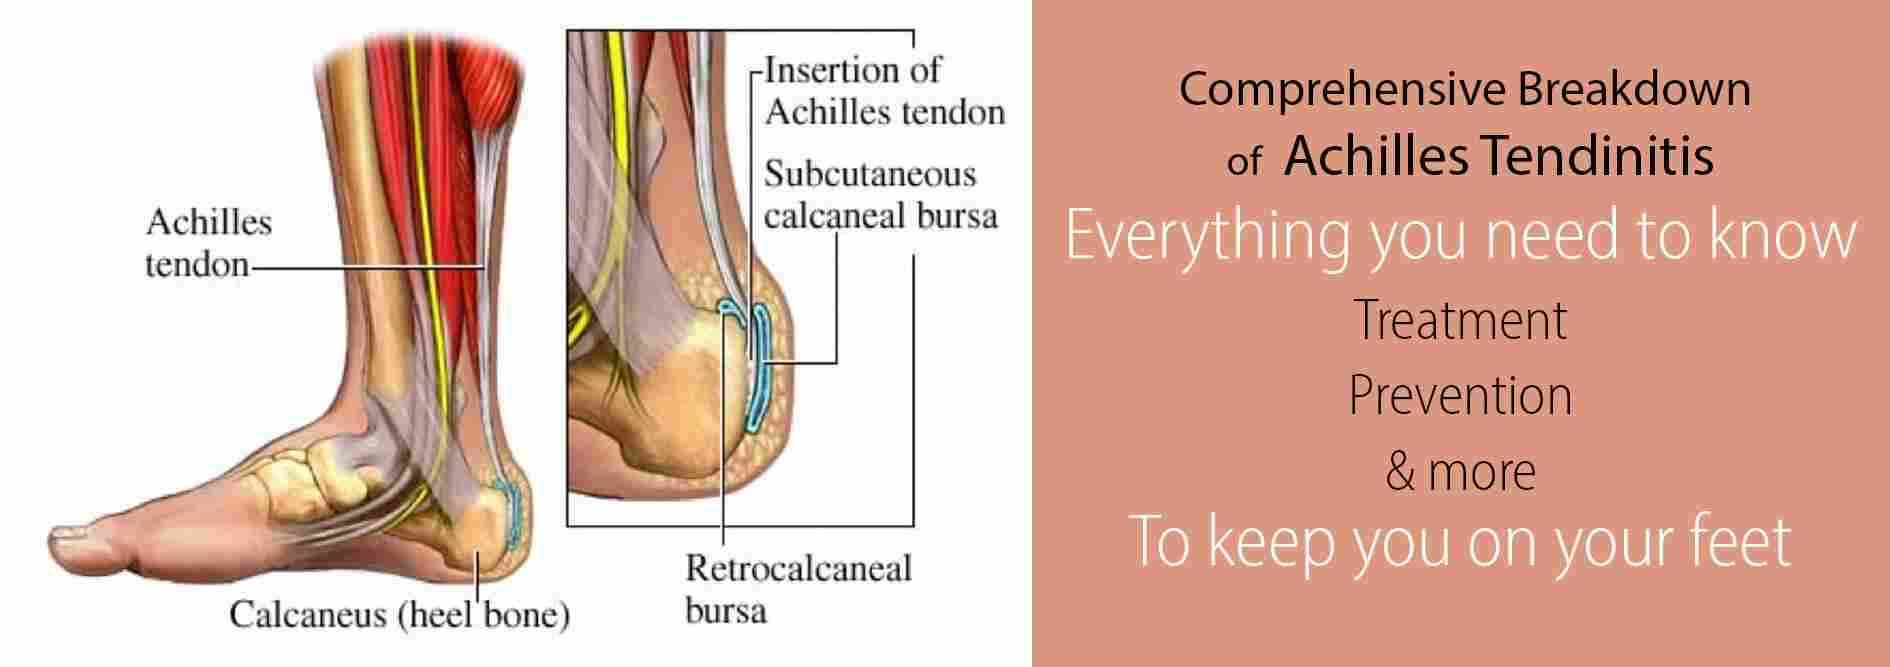 achilles tendonitis the complete guide to causes treatments